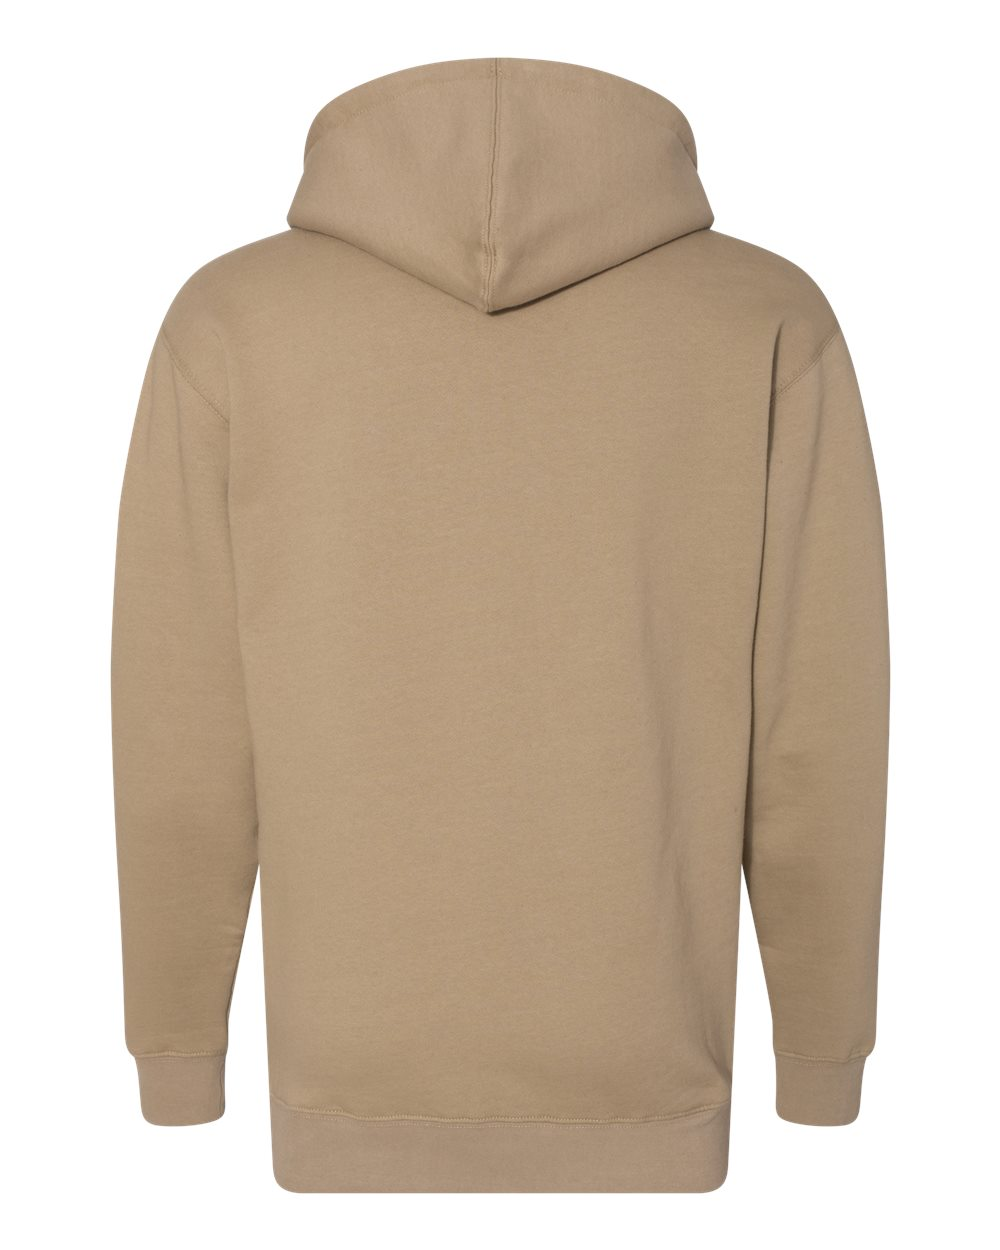 Independent-Trading-Co-Mens-Hooded-Pullover-Sweatshirt-IND4000-up-to-3XL miniature 76